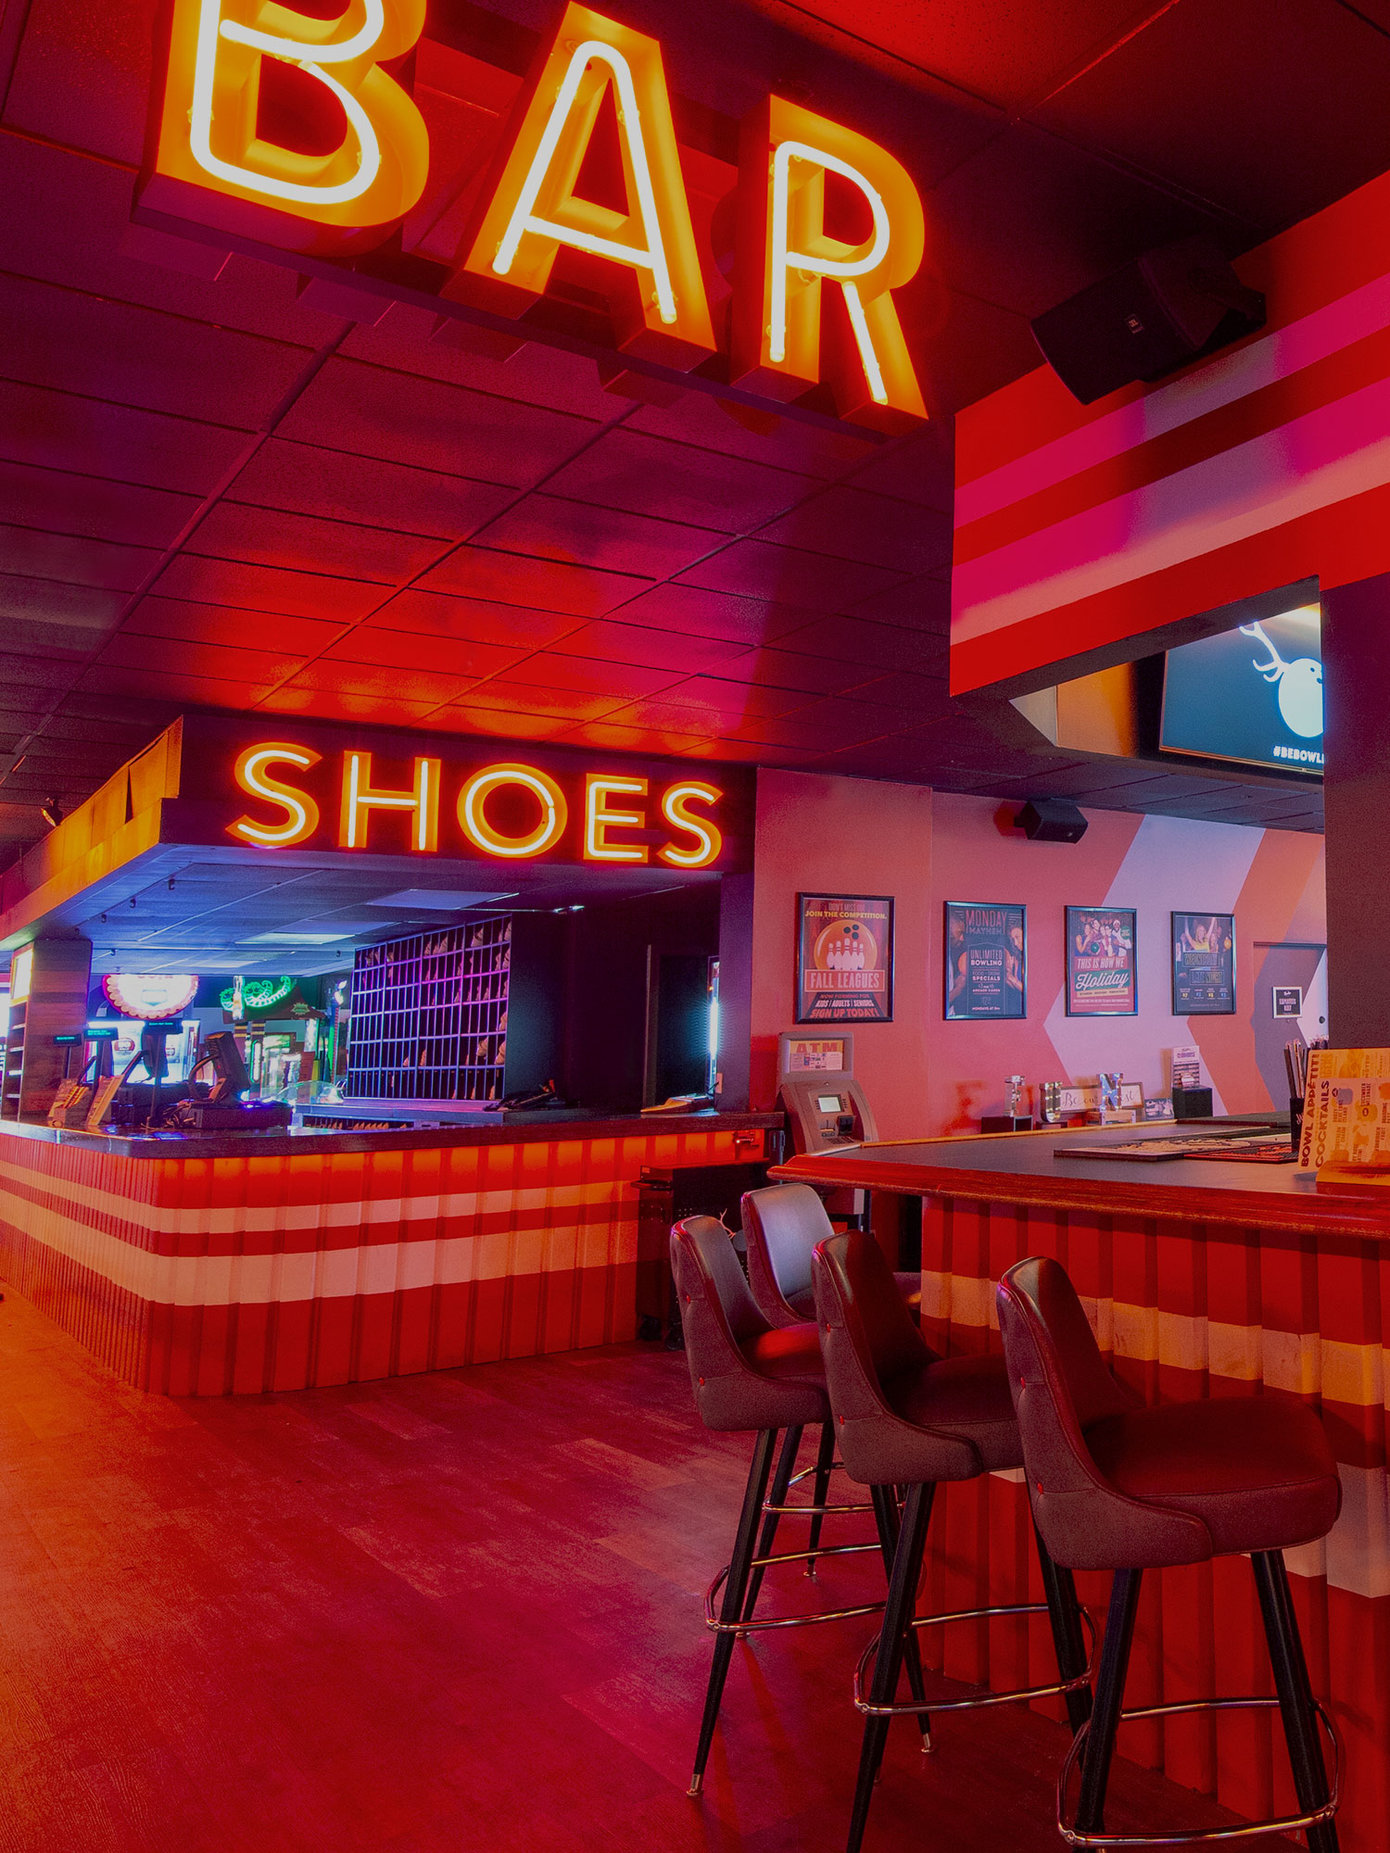 Bar and shoe desk at Bowlero West Covina